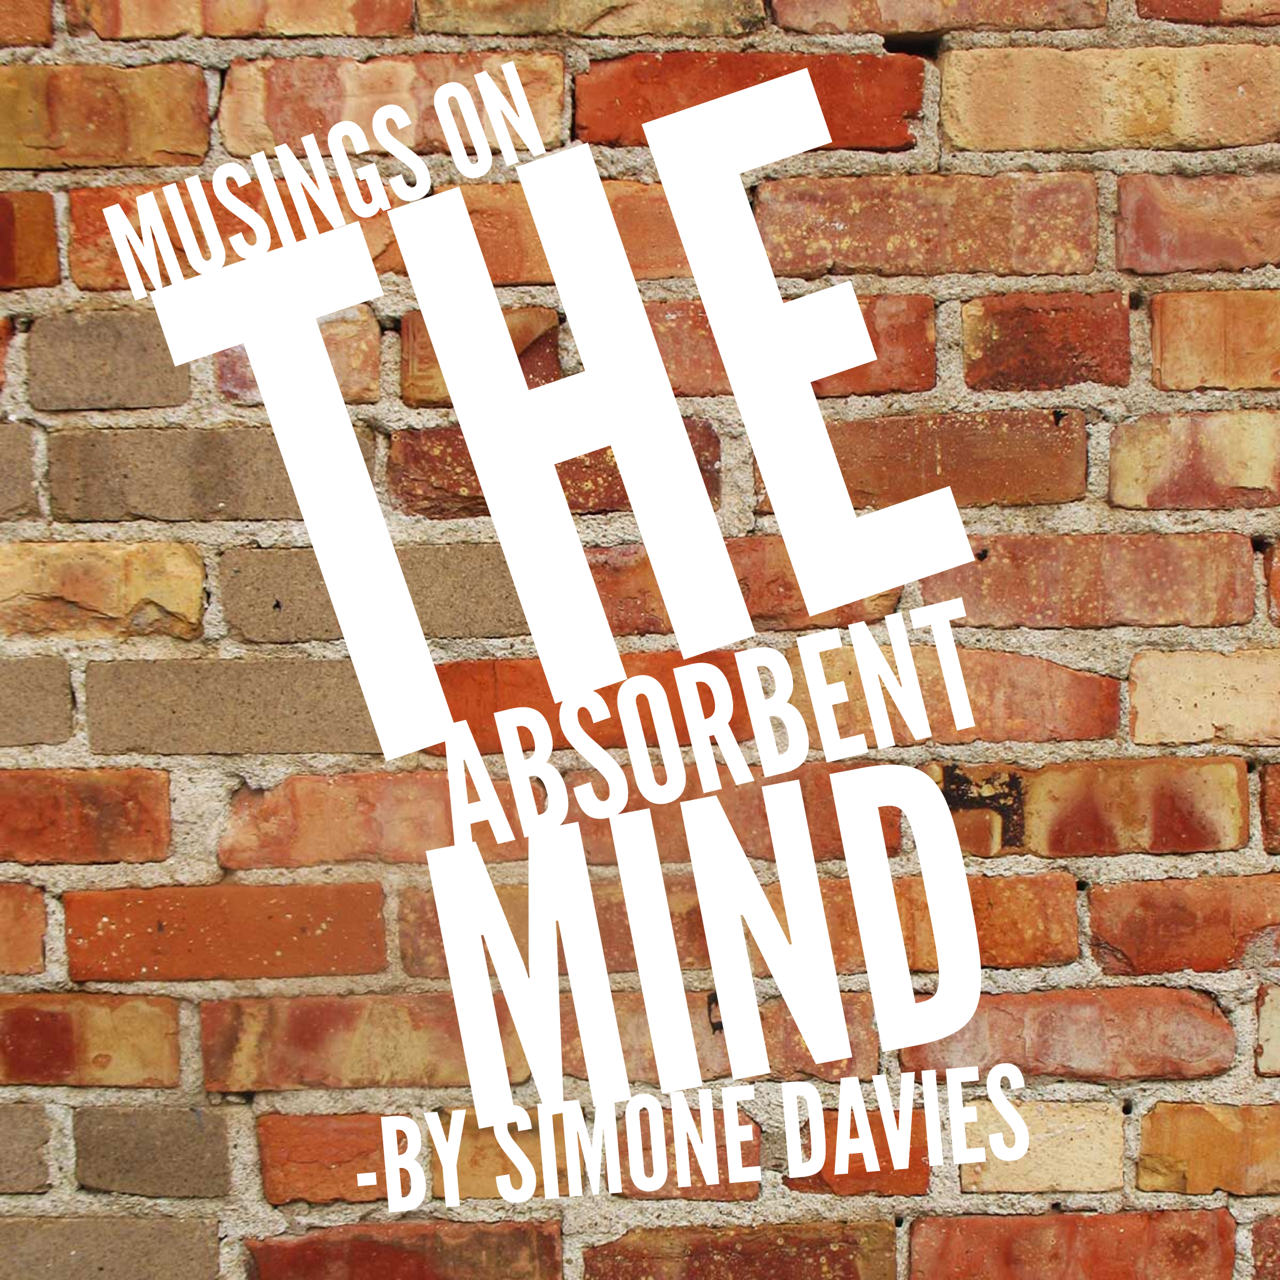 musings on the absorbent mind